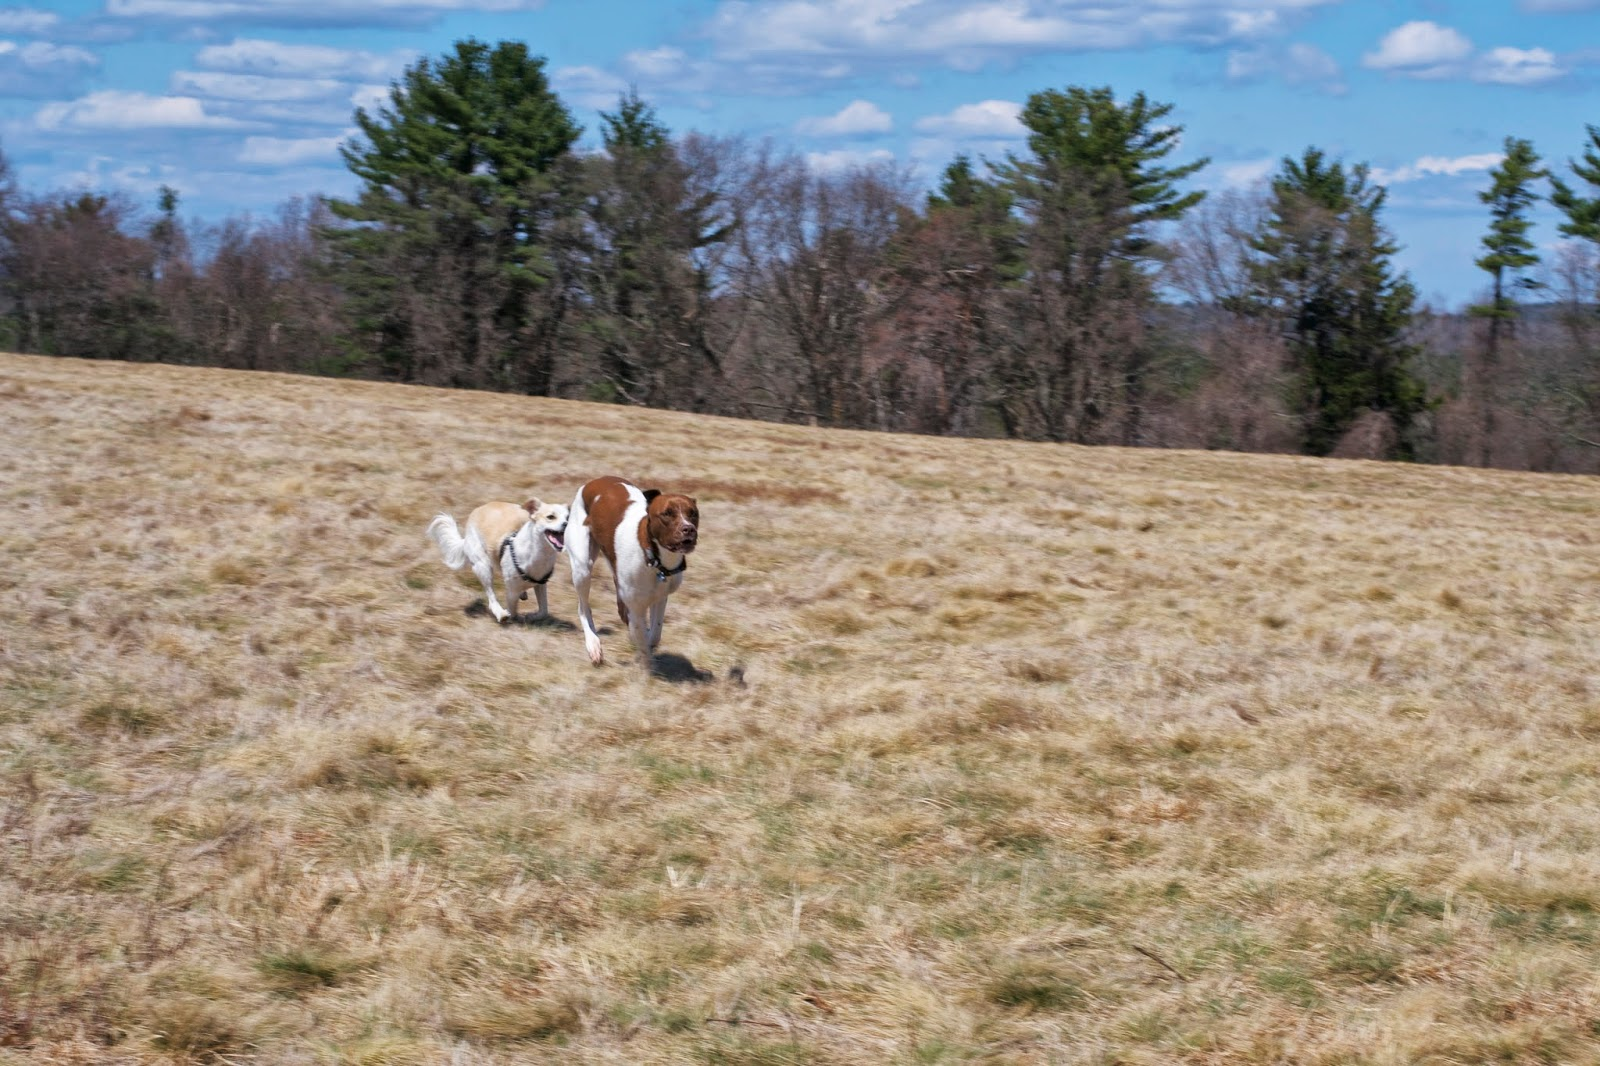 Happy dogs get a moment to run off leash.